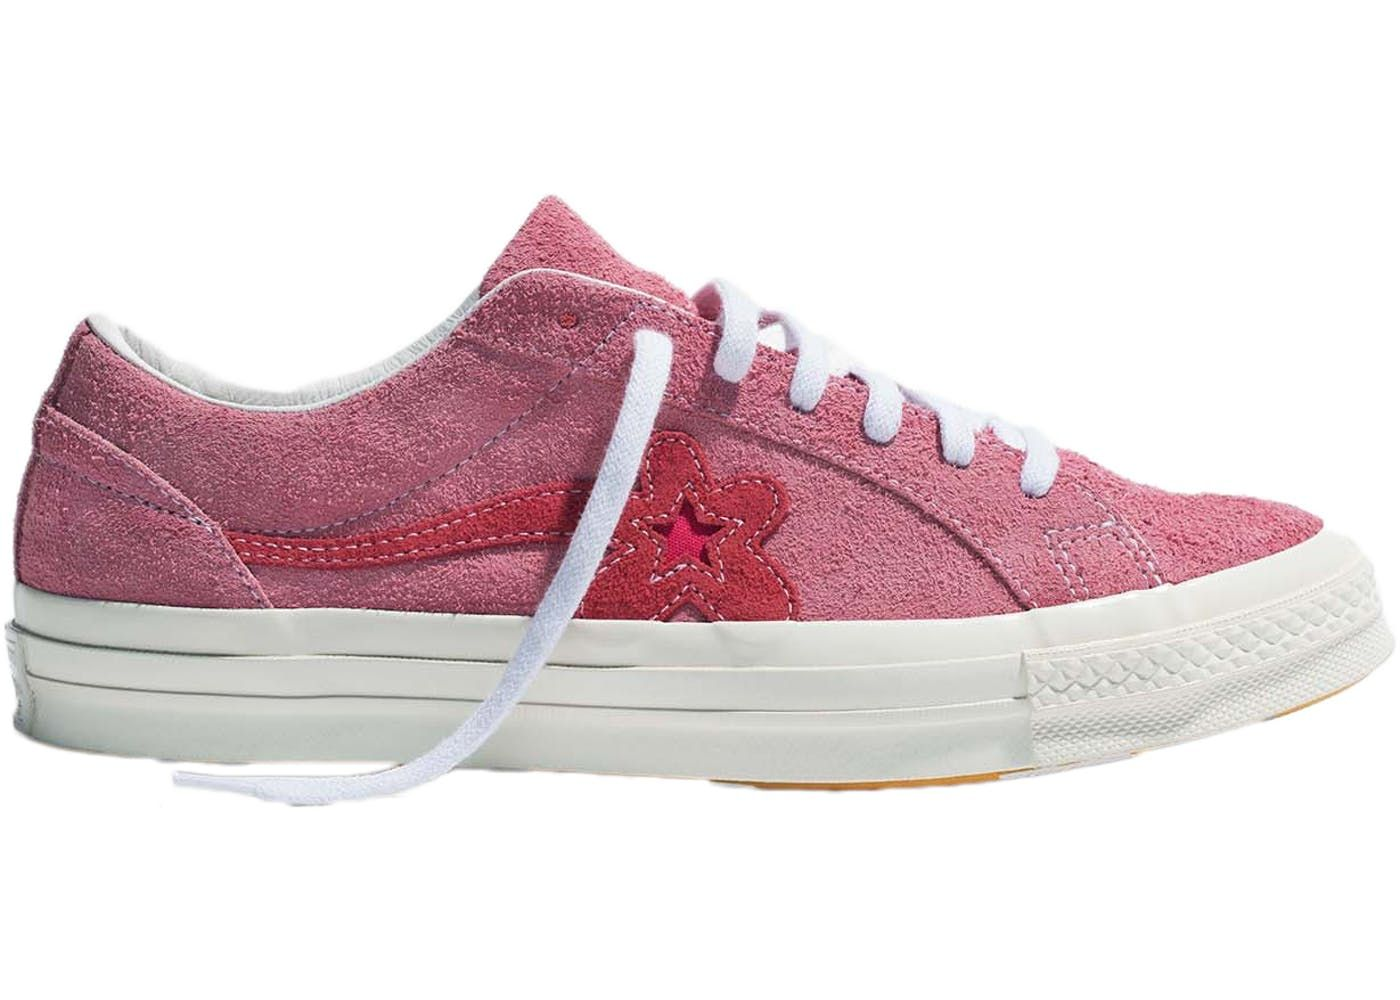 Converse One Star Ox Tyler the Creator Golf Le Fleur ...